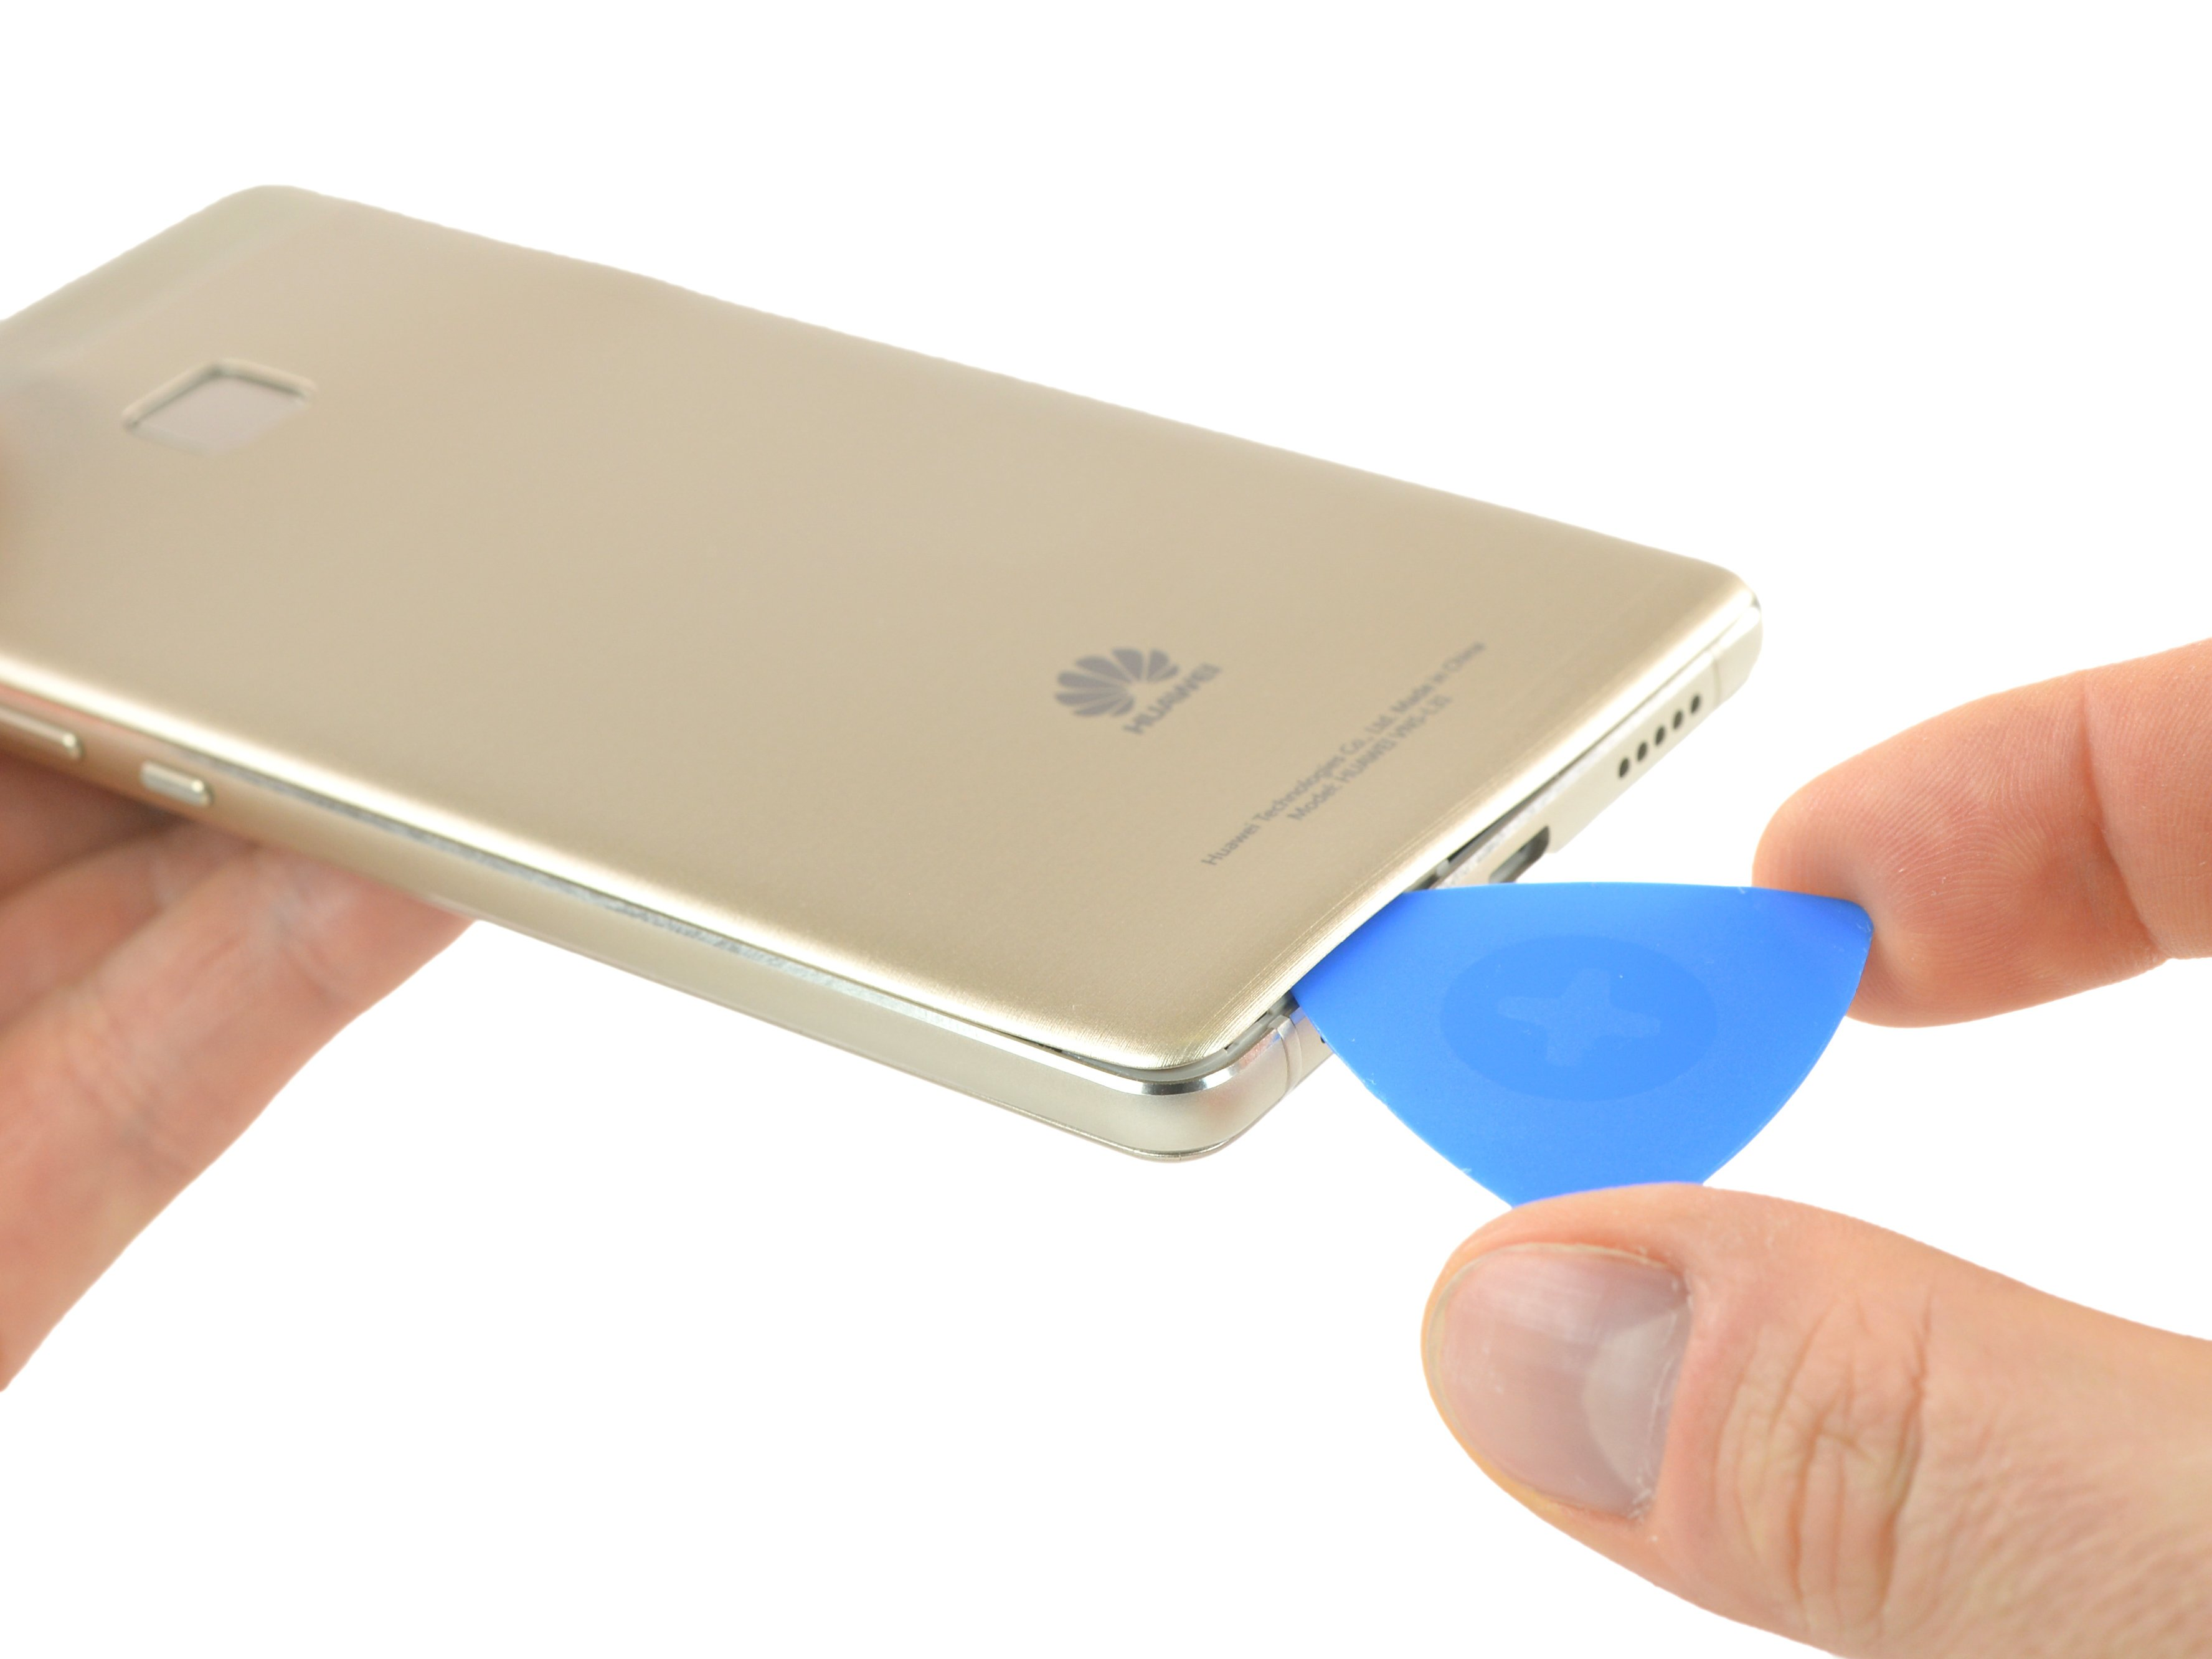 Huawei P9 Lite Back Cover Replacement - iFixit Repair Guide